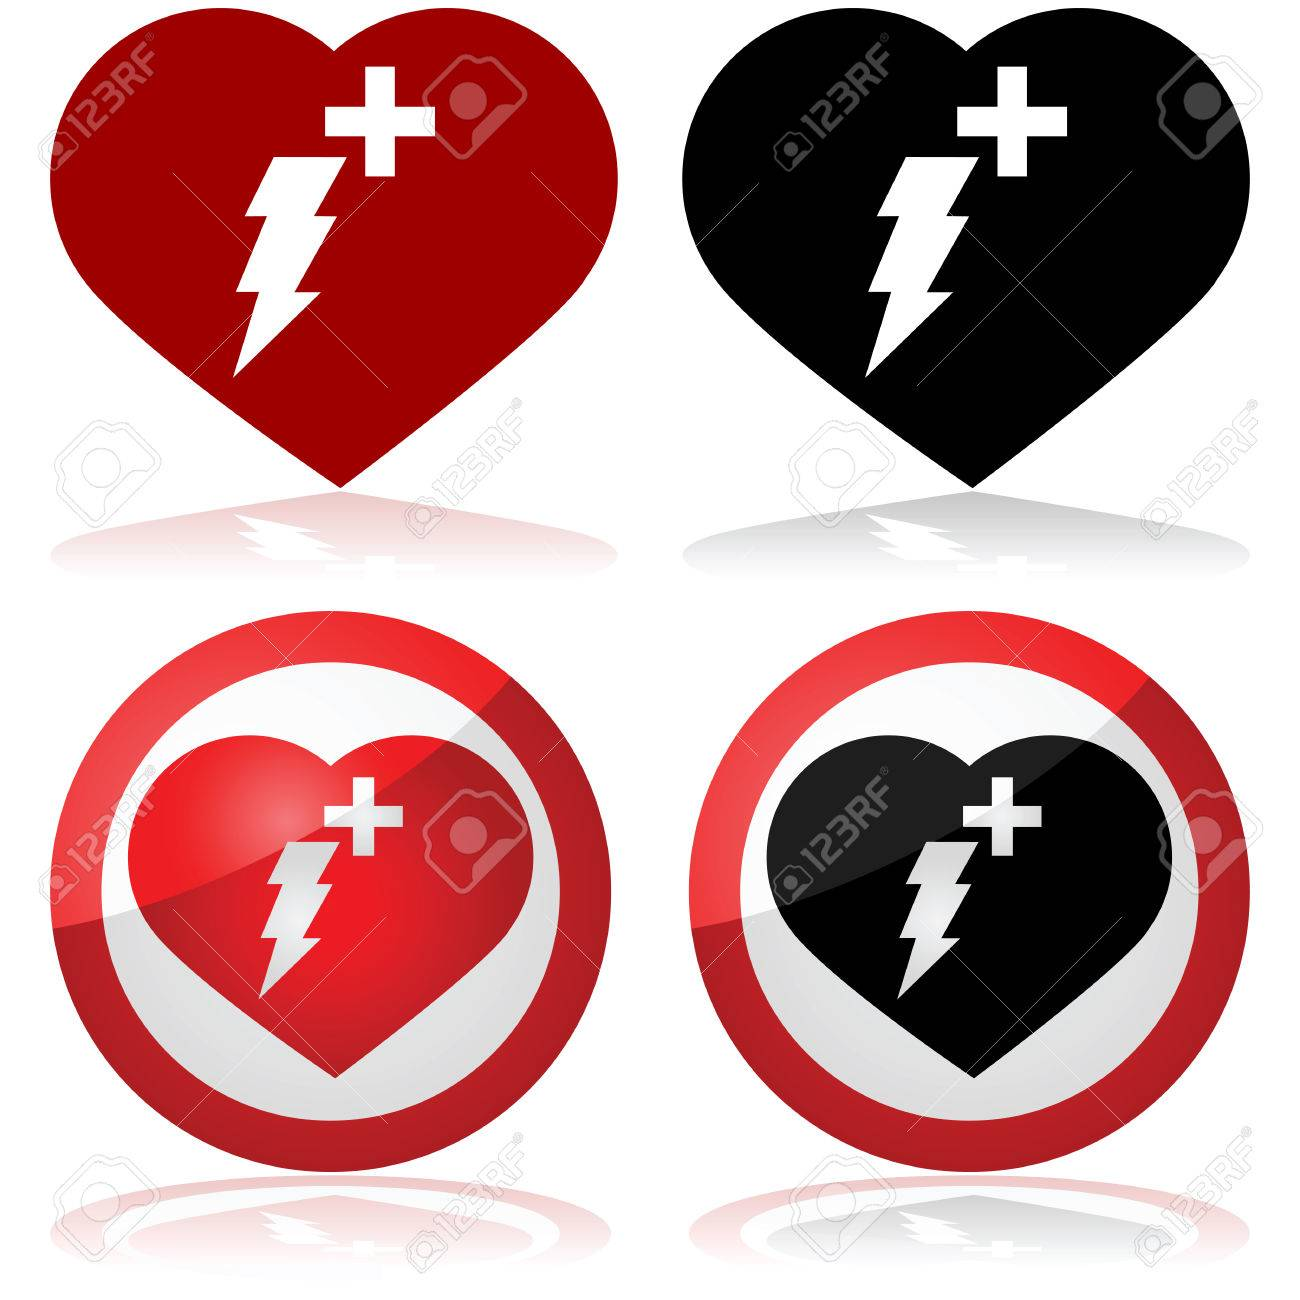 defibrillator icon set showing a heart with a lightning and a